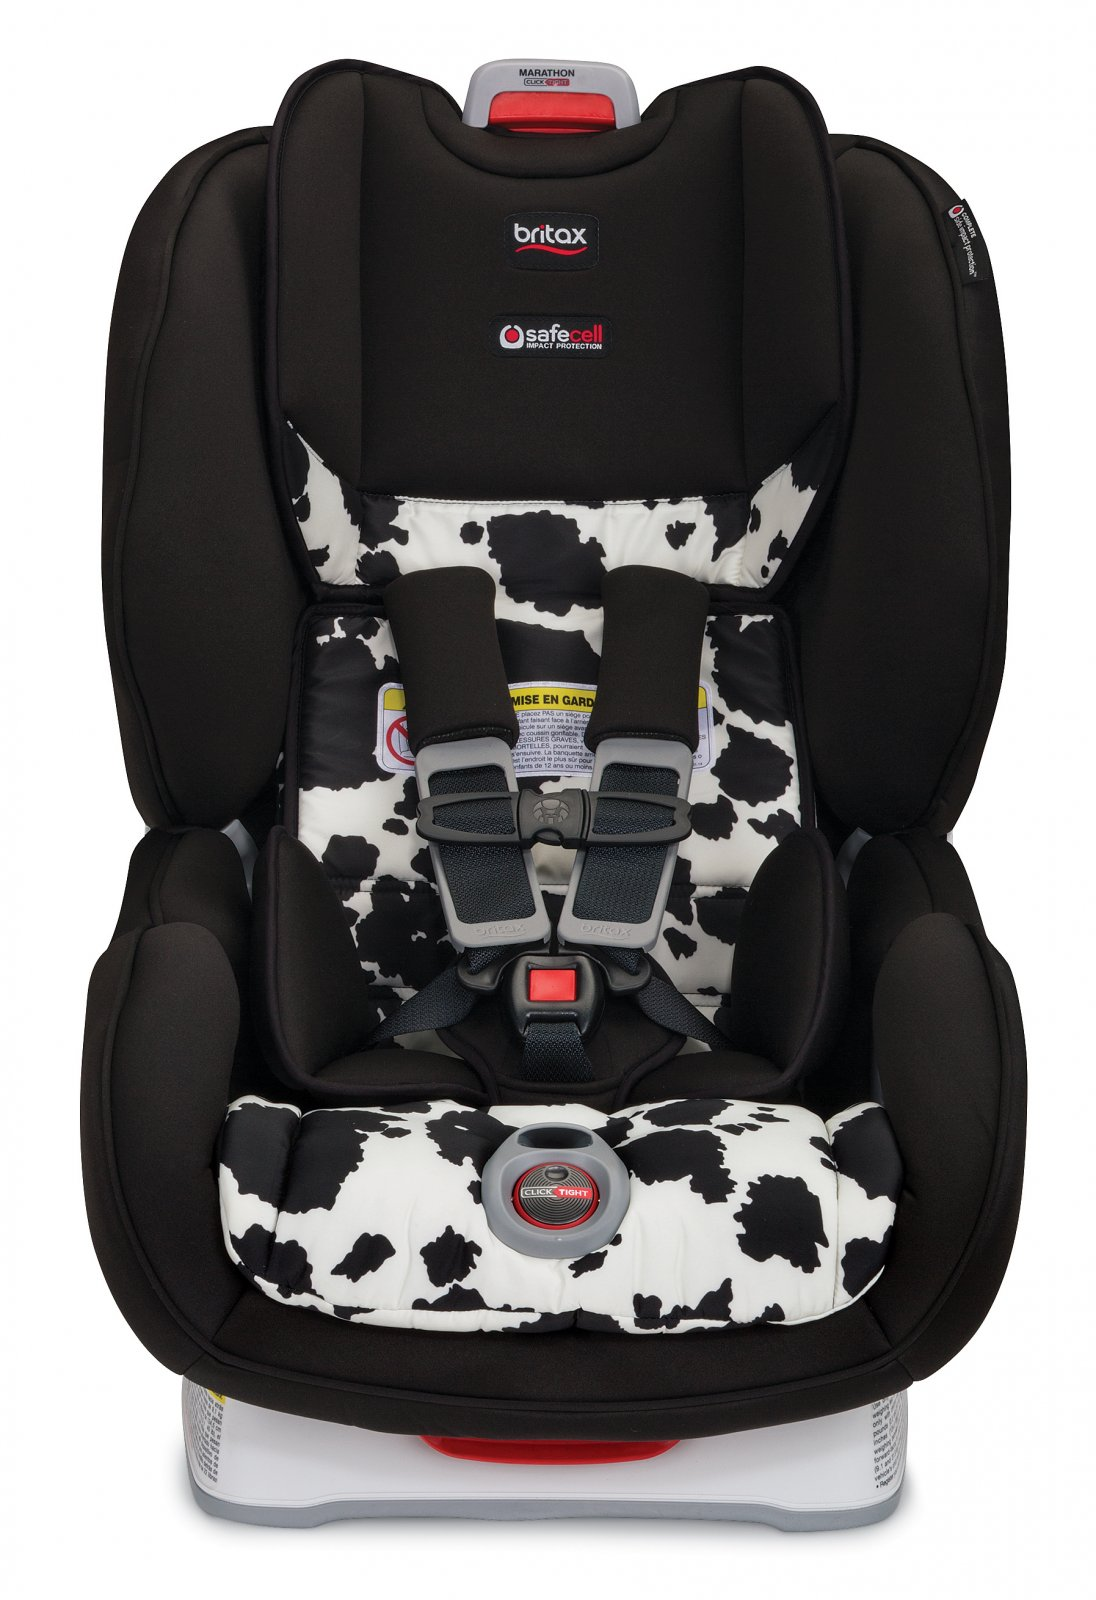 Britax | Marathon Clicktight | Convertible Carseat